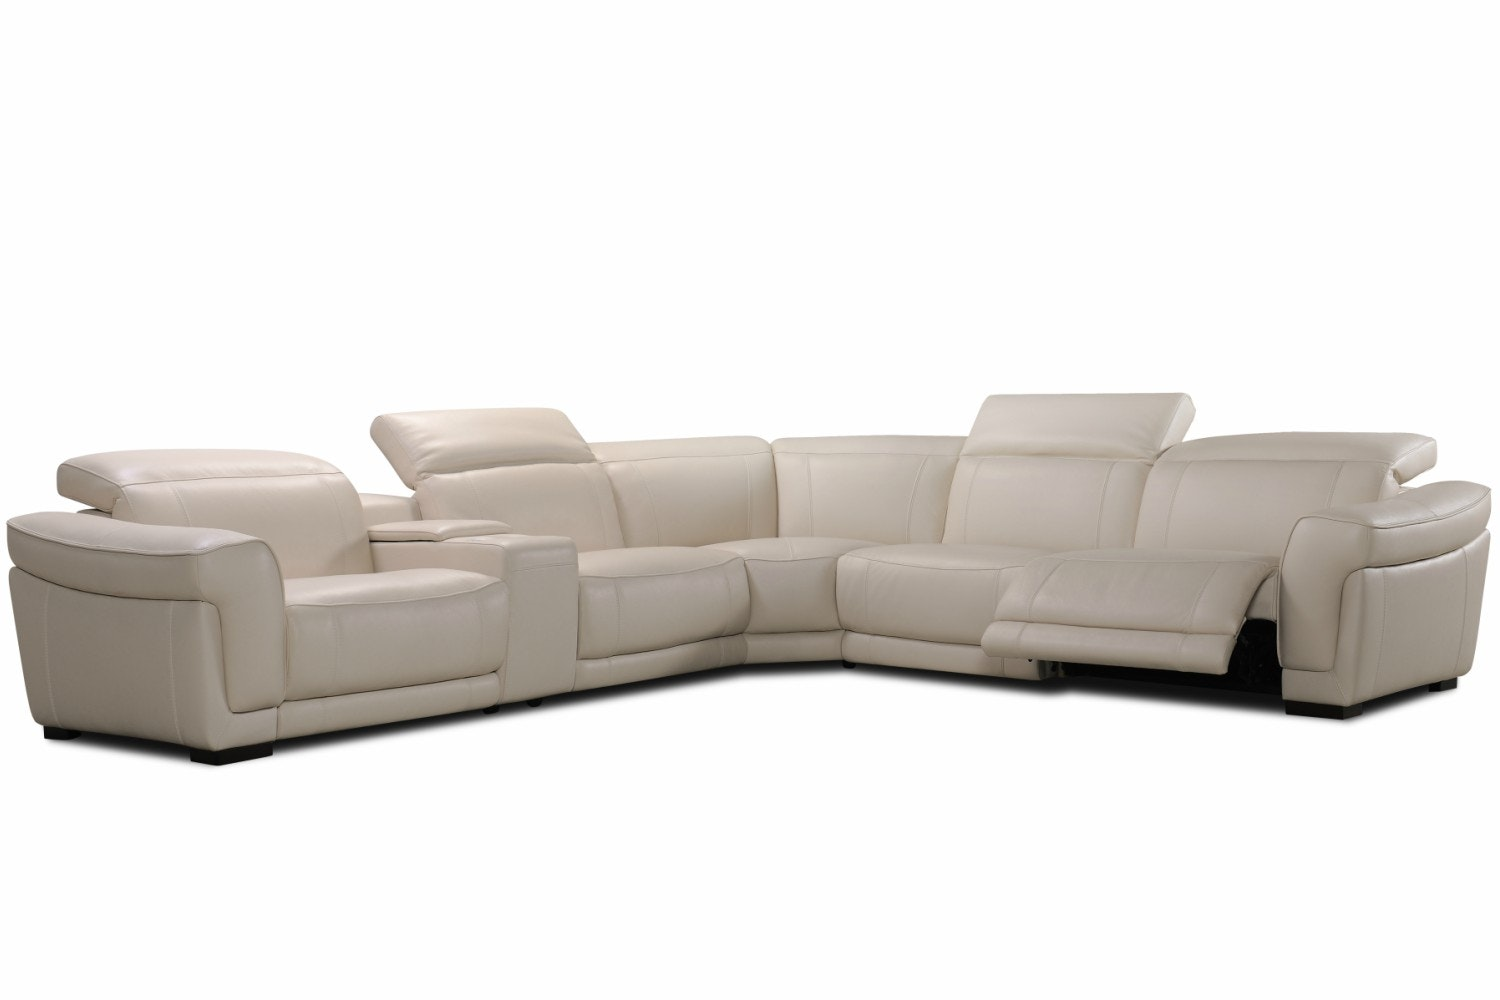 Sonny Corner Sofa | Electric Recliner